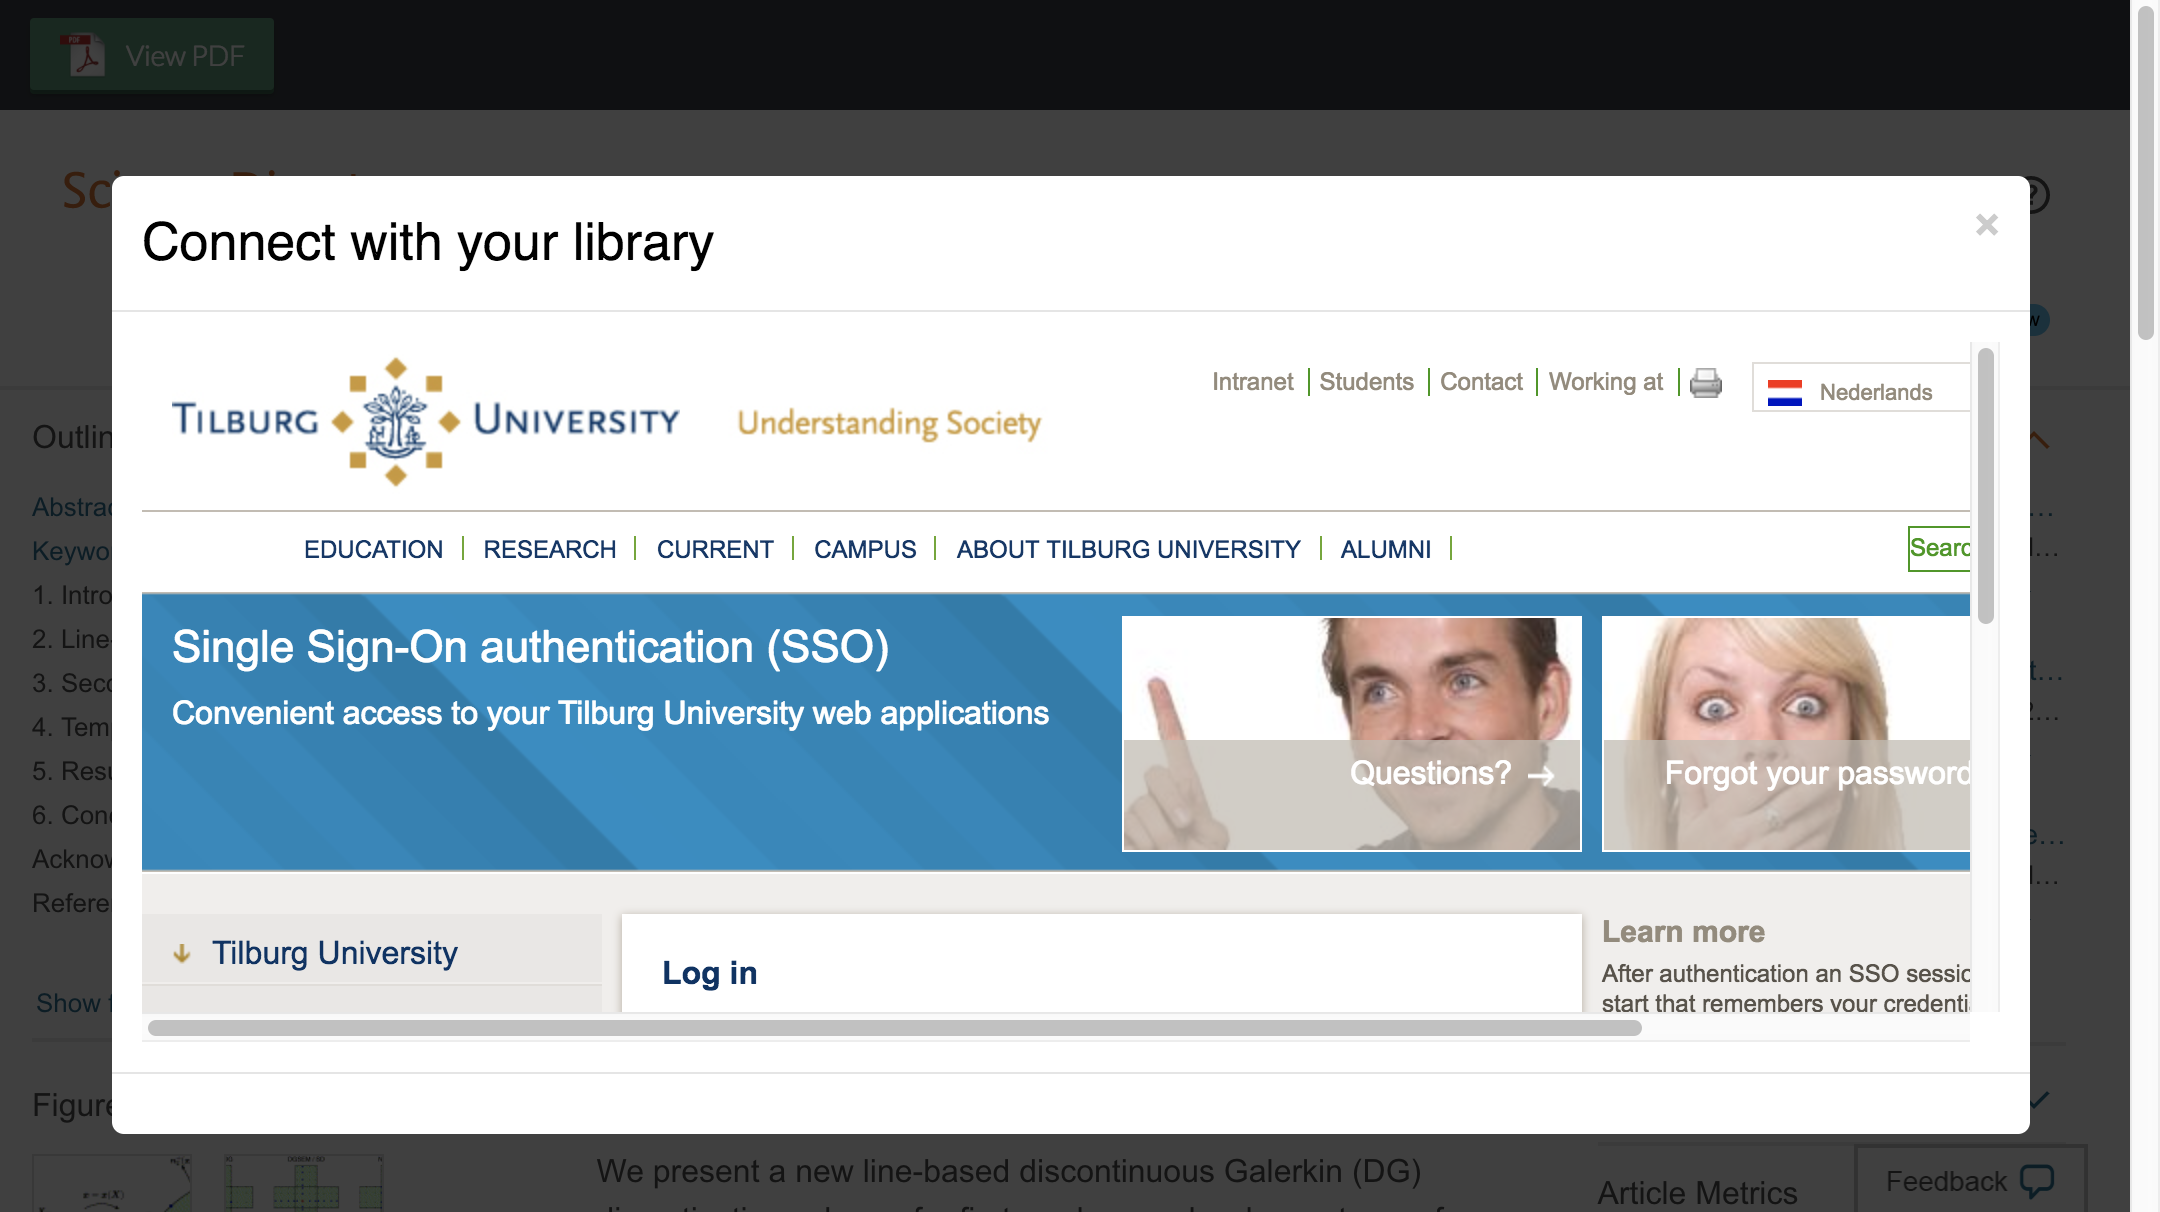 Enter Tilburg University credentials to access journal subscriptions.